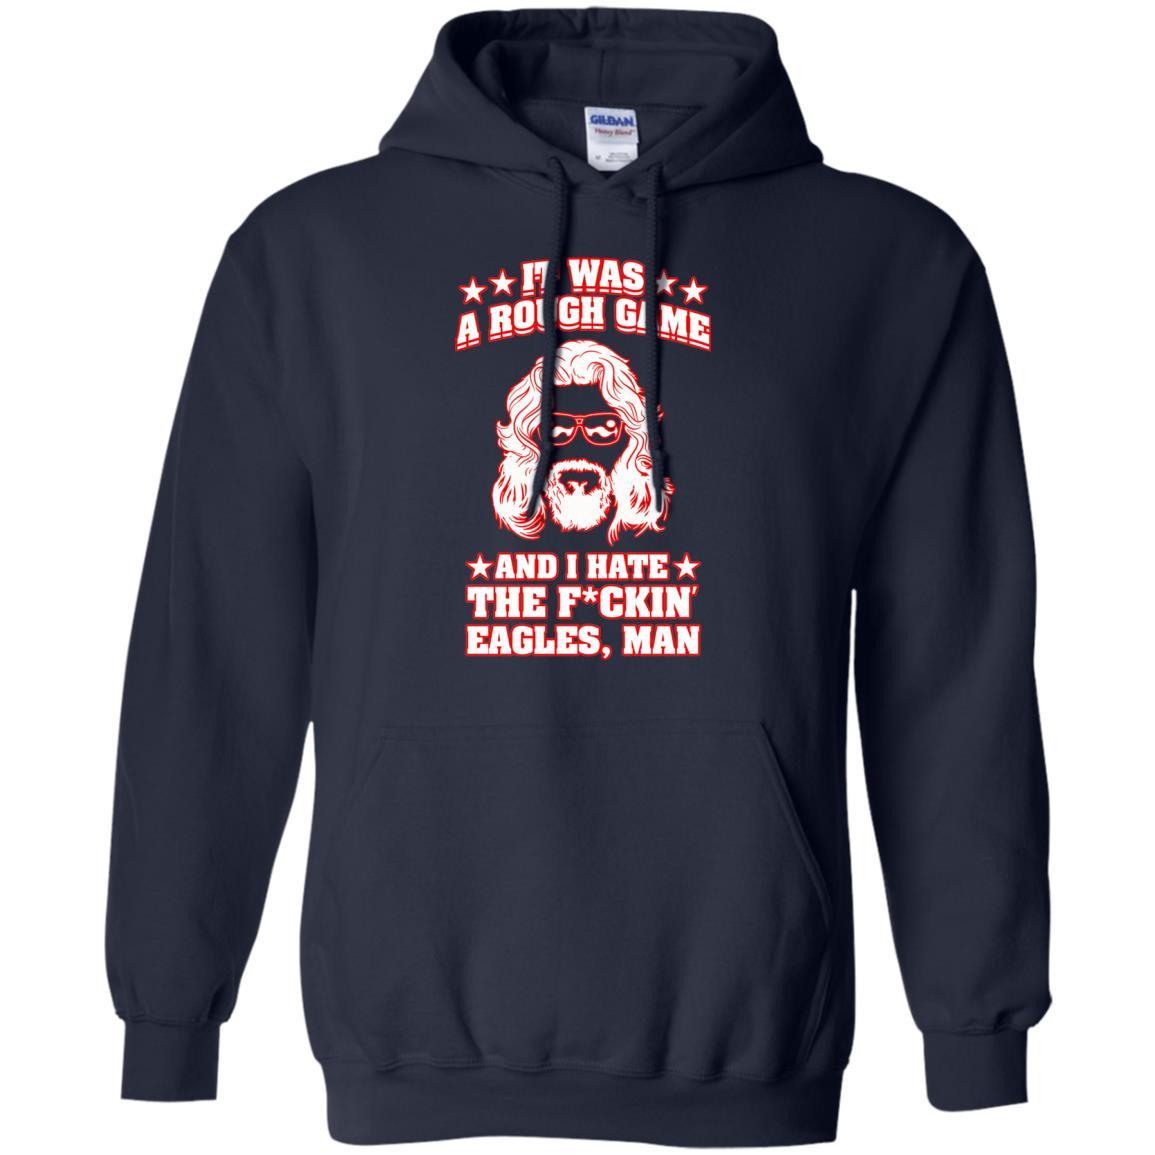 Sweatshirts - Hate The Eagles Hoodie